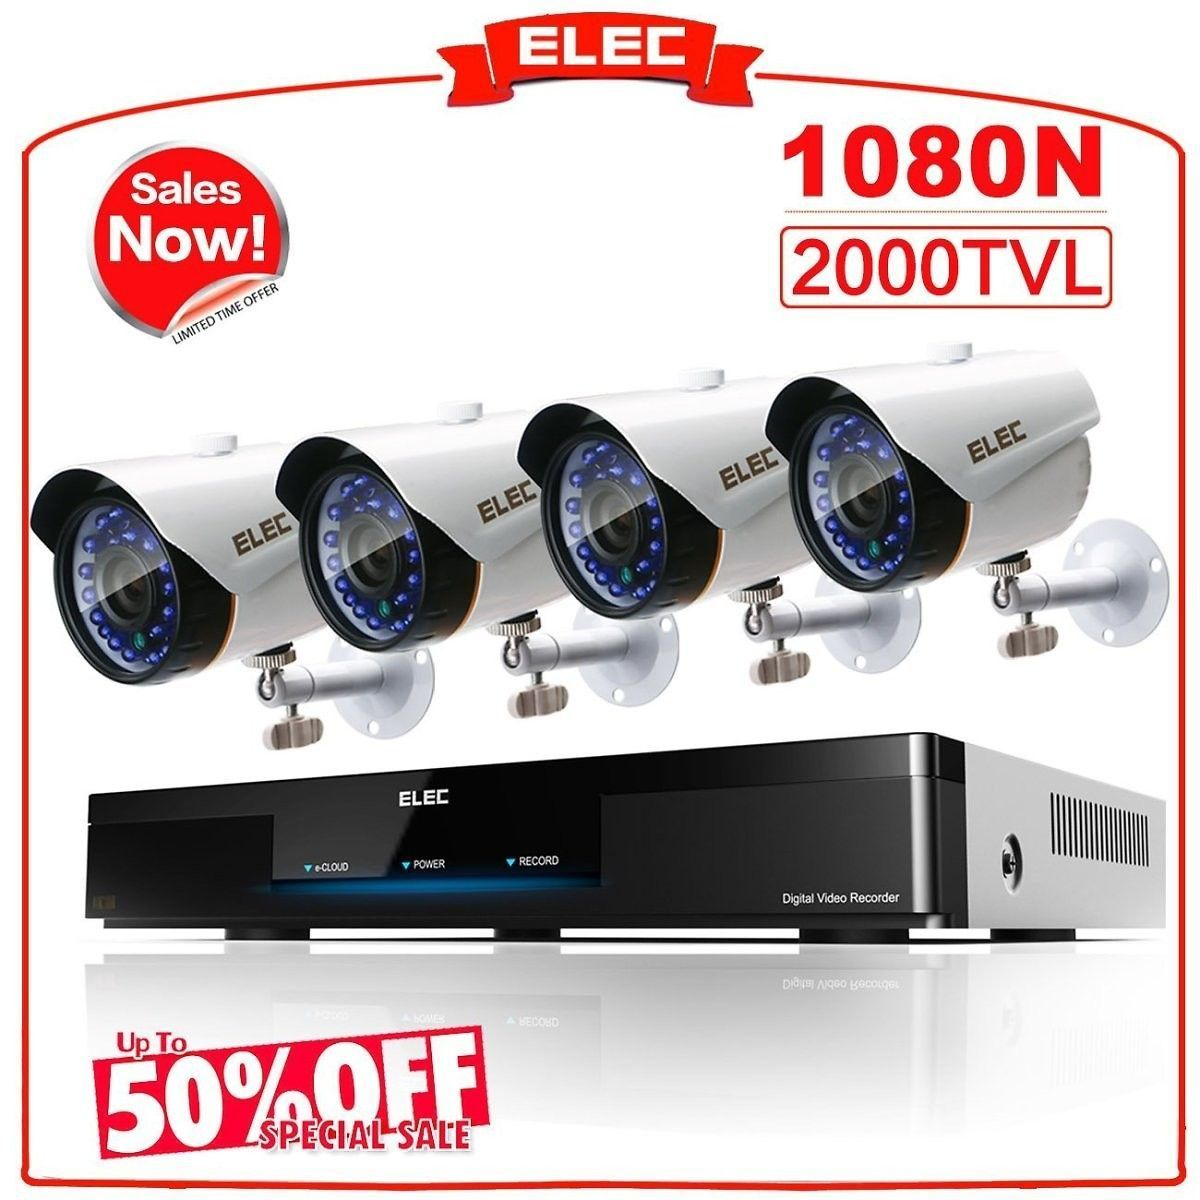 AHD CH N DVR Home Security Camera System CCTV Monitoring Video